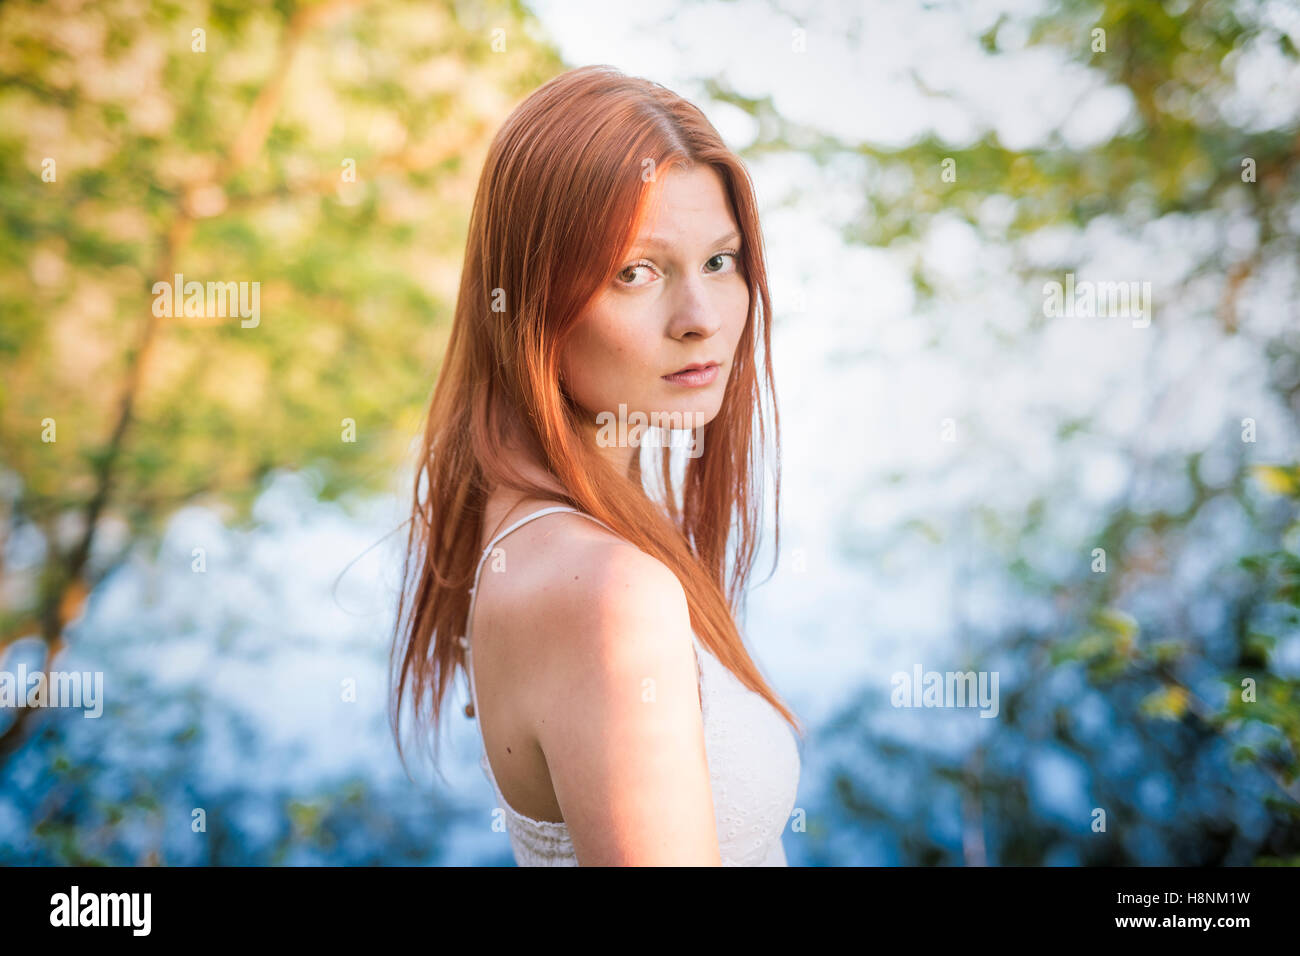 Portrait of young woman in forest - Stock Image